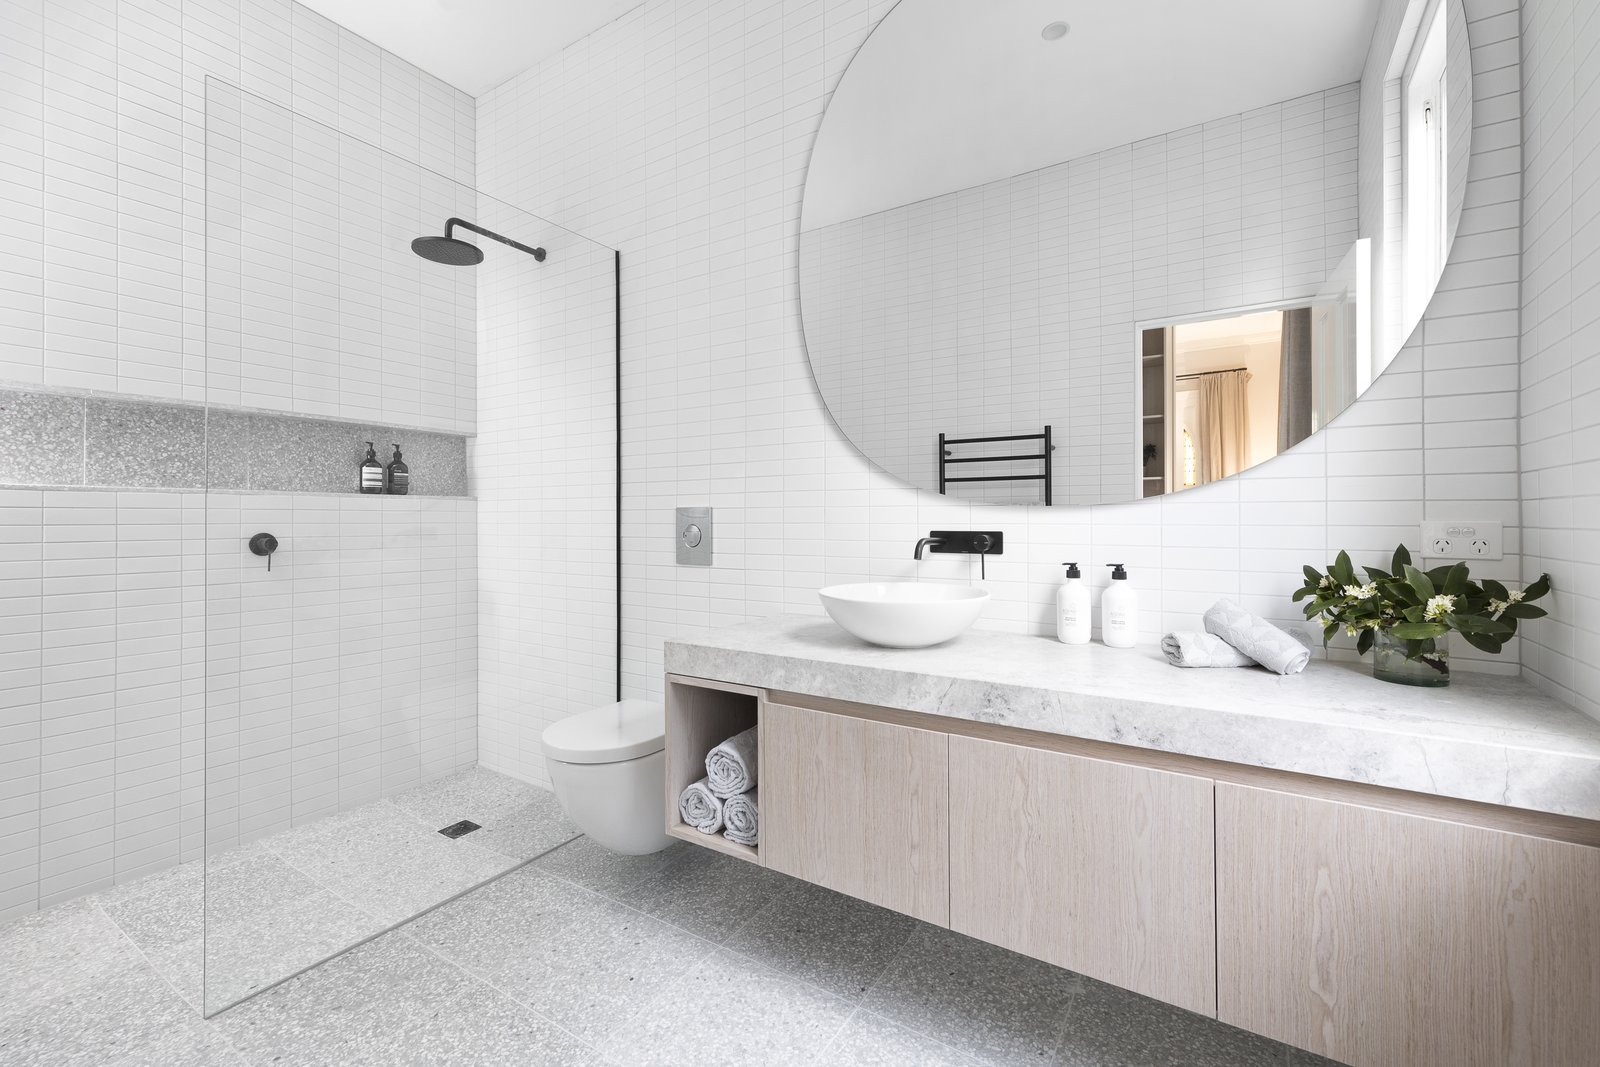 Bath, Marble, Enclosed, and Full  Best Bath Enclosed Full Marble Photos from A Progressive Melbourne Development Company Helps Facilitate an Exquisite Home Renovation